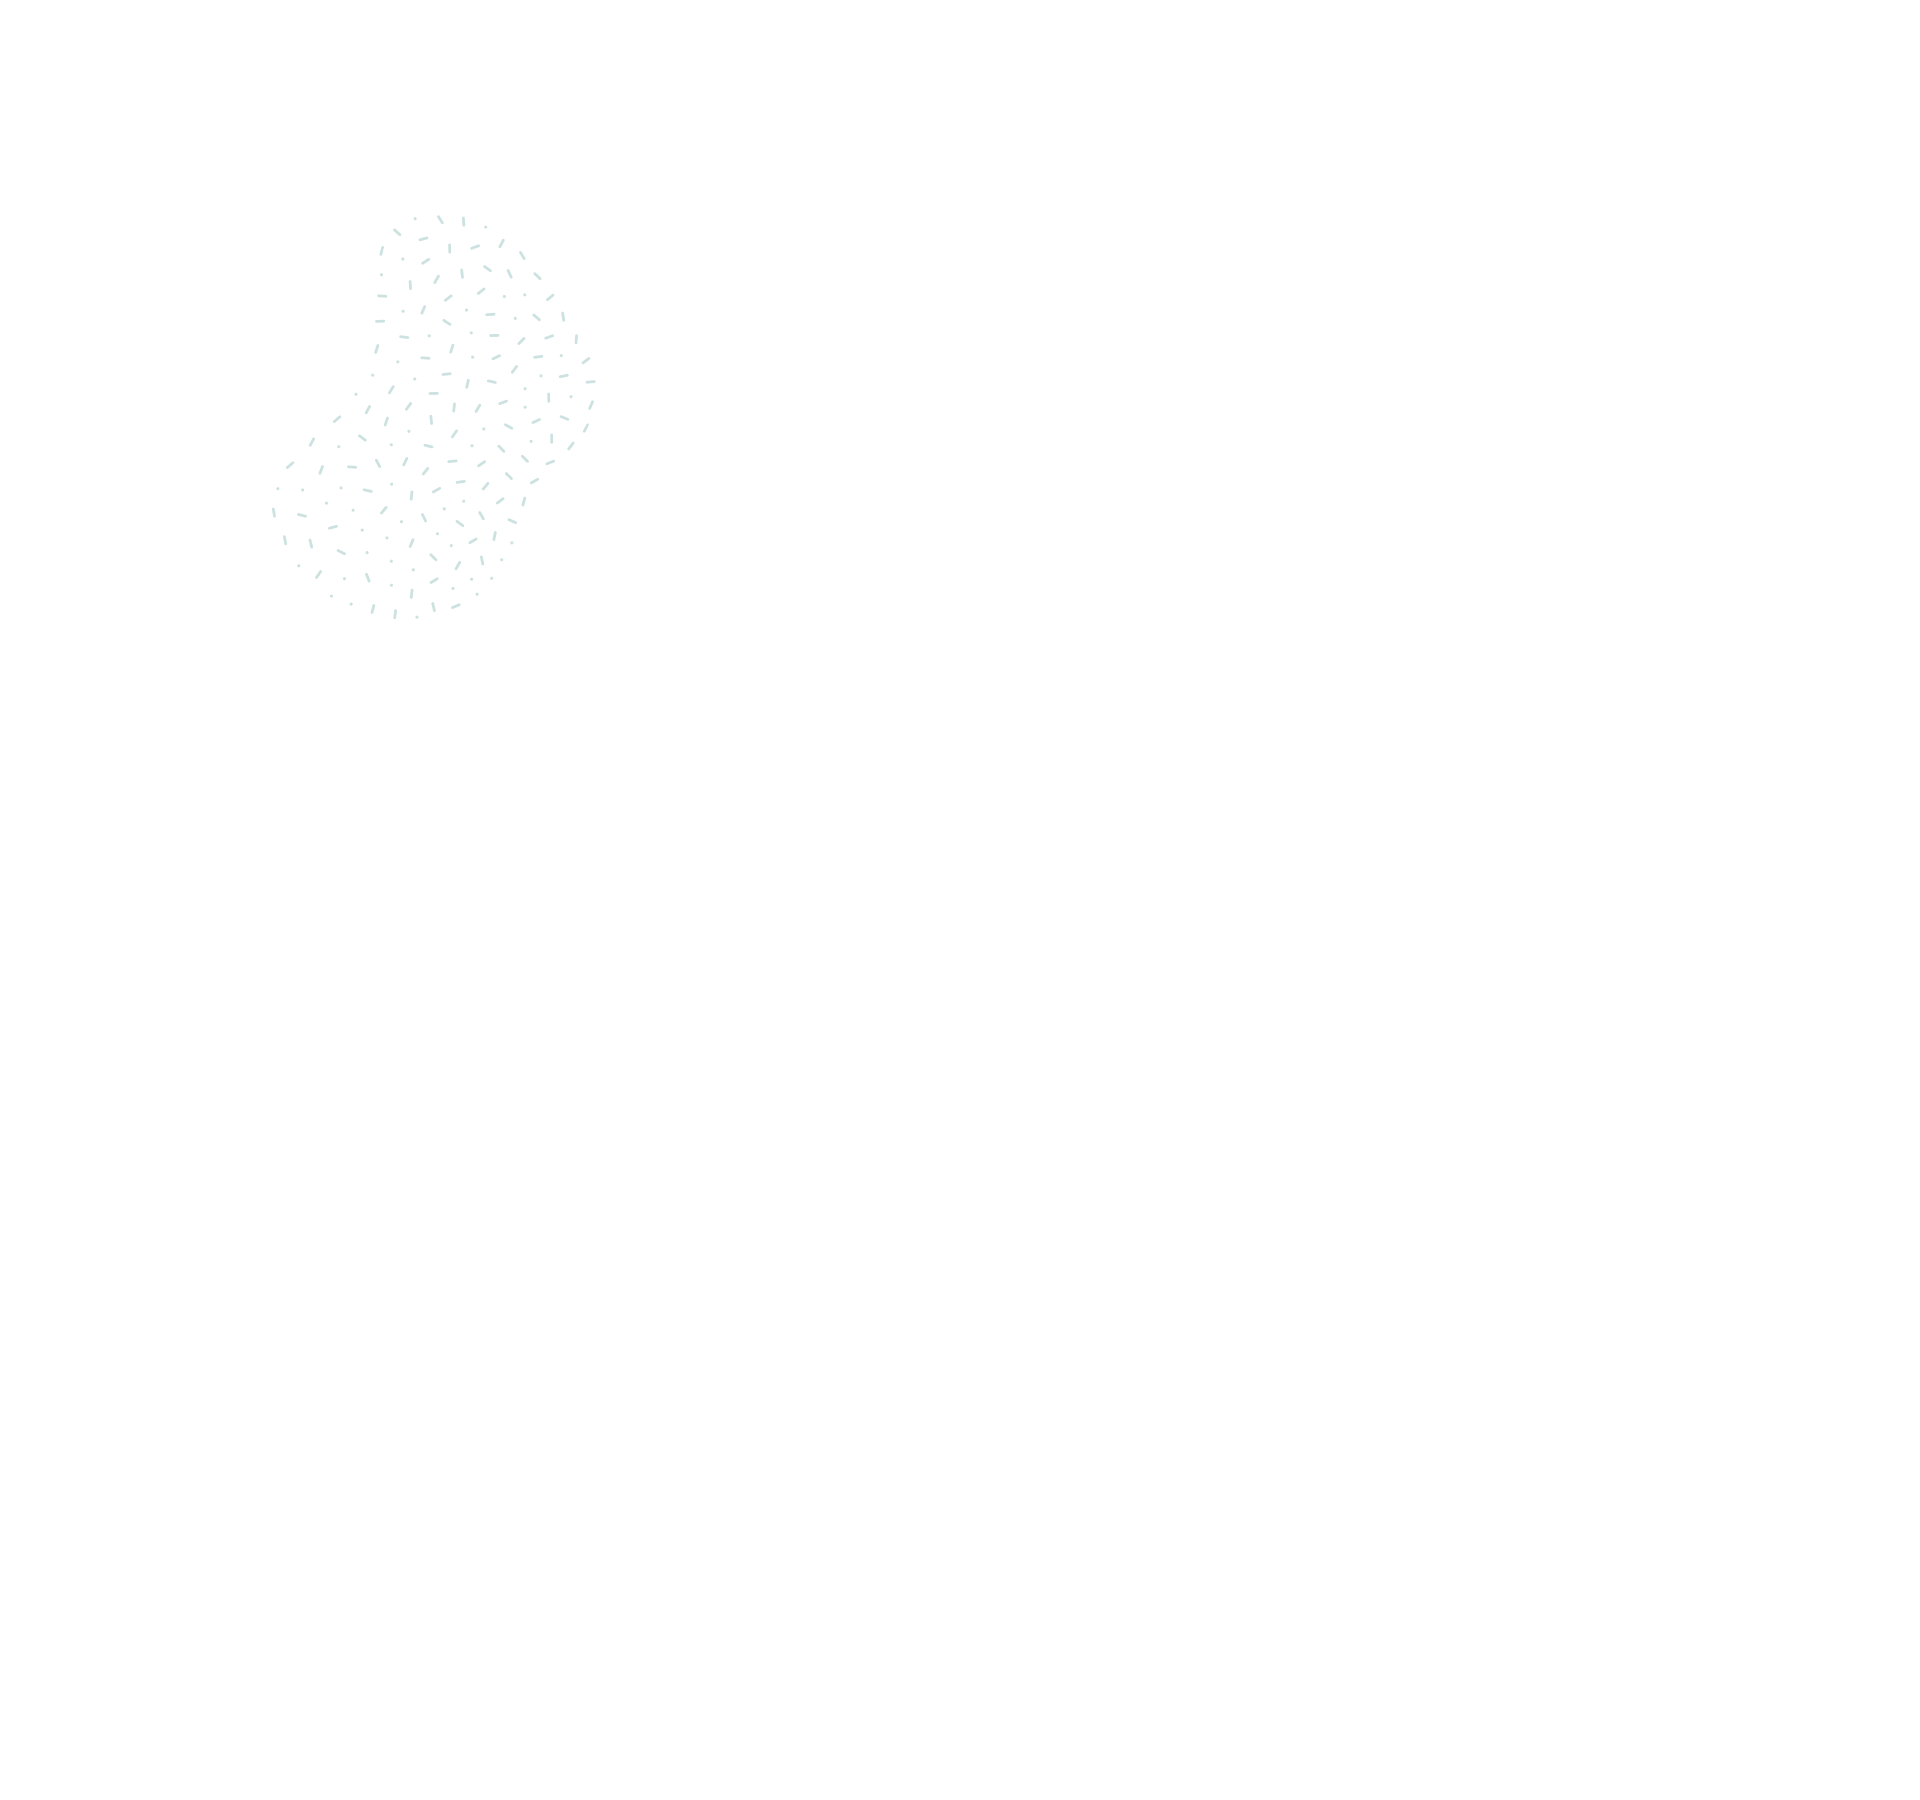 background_dots_04